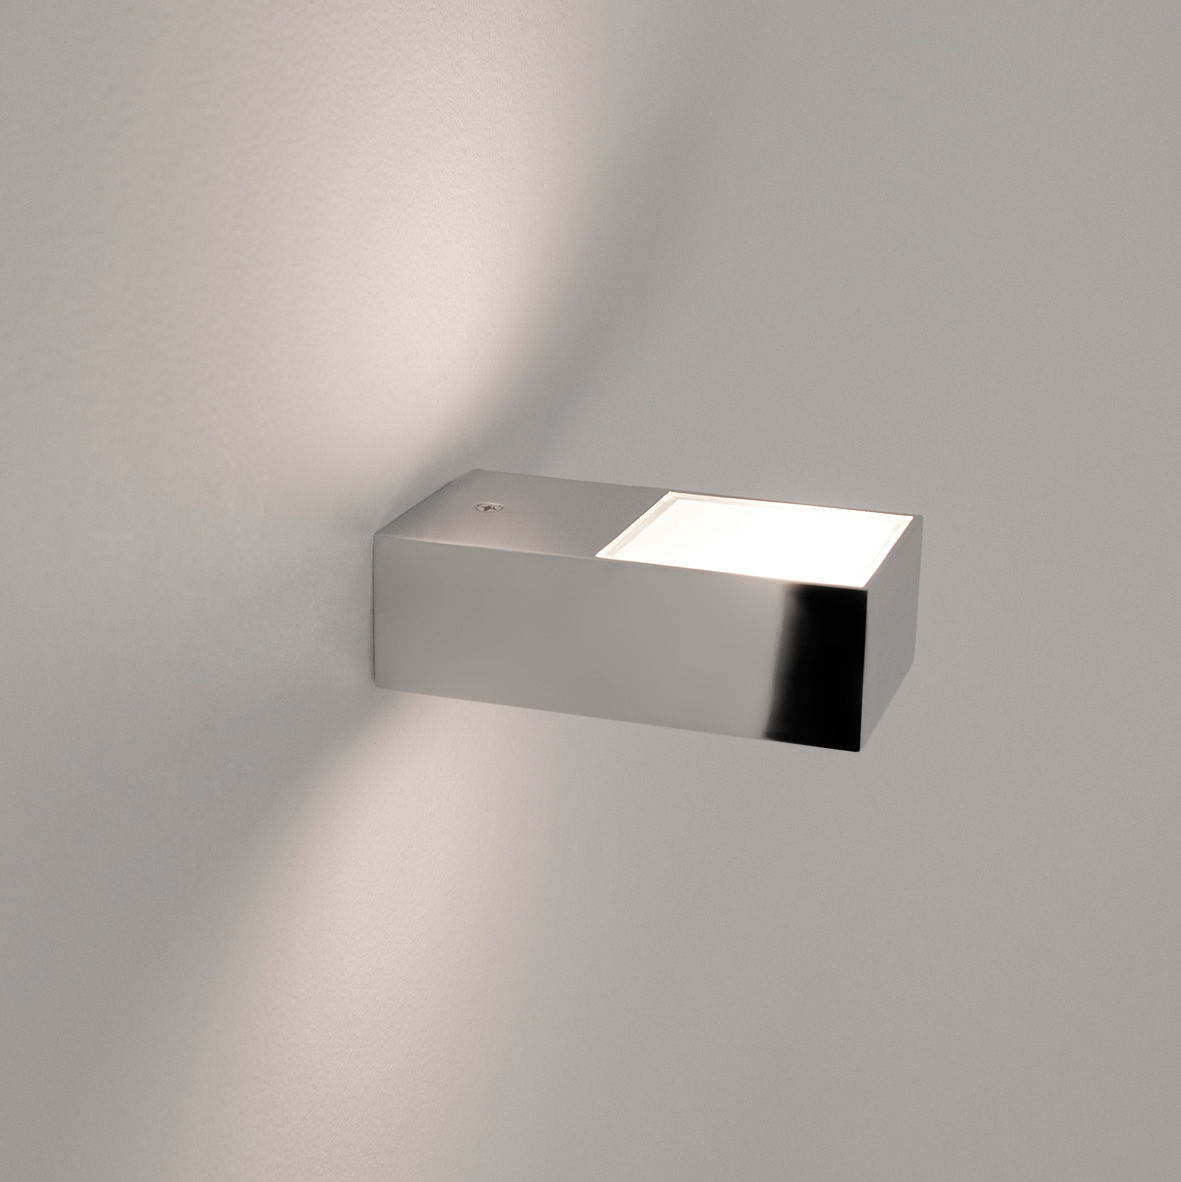 ASTRO Kappa 0672 rectangular bathroom wall light 1 x 25W G9 IP44 chrome finish Thumbnail 2